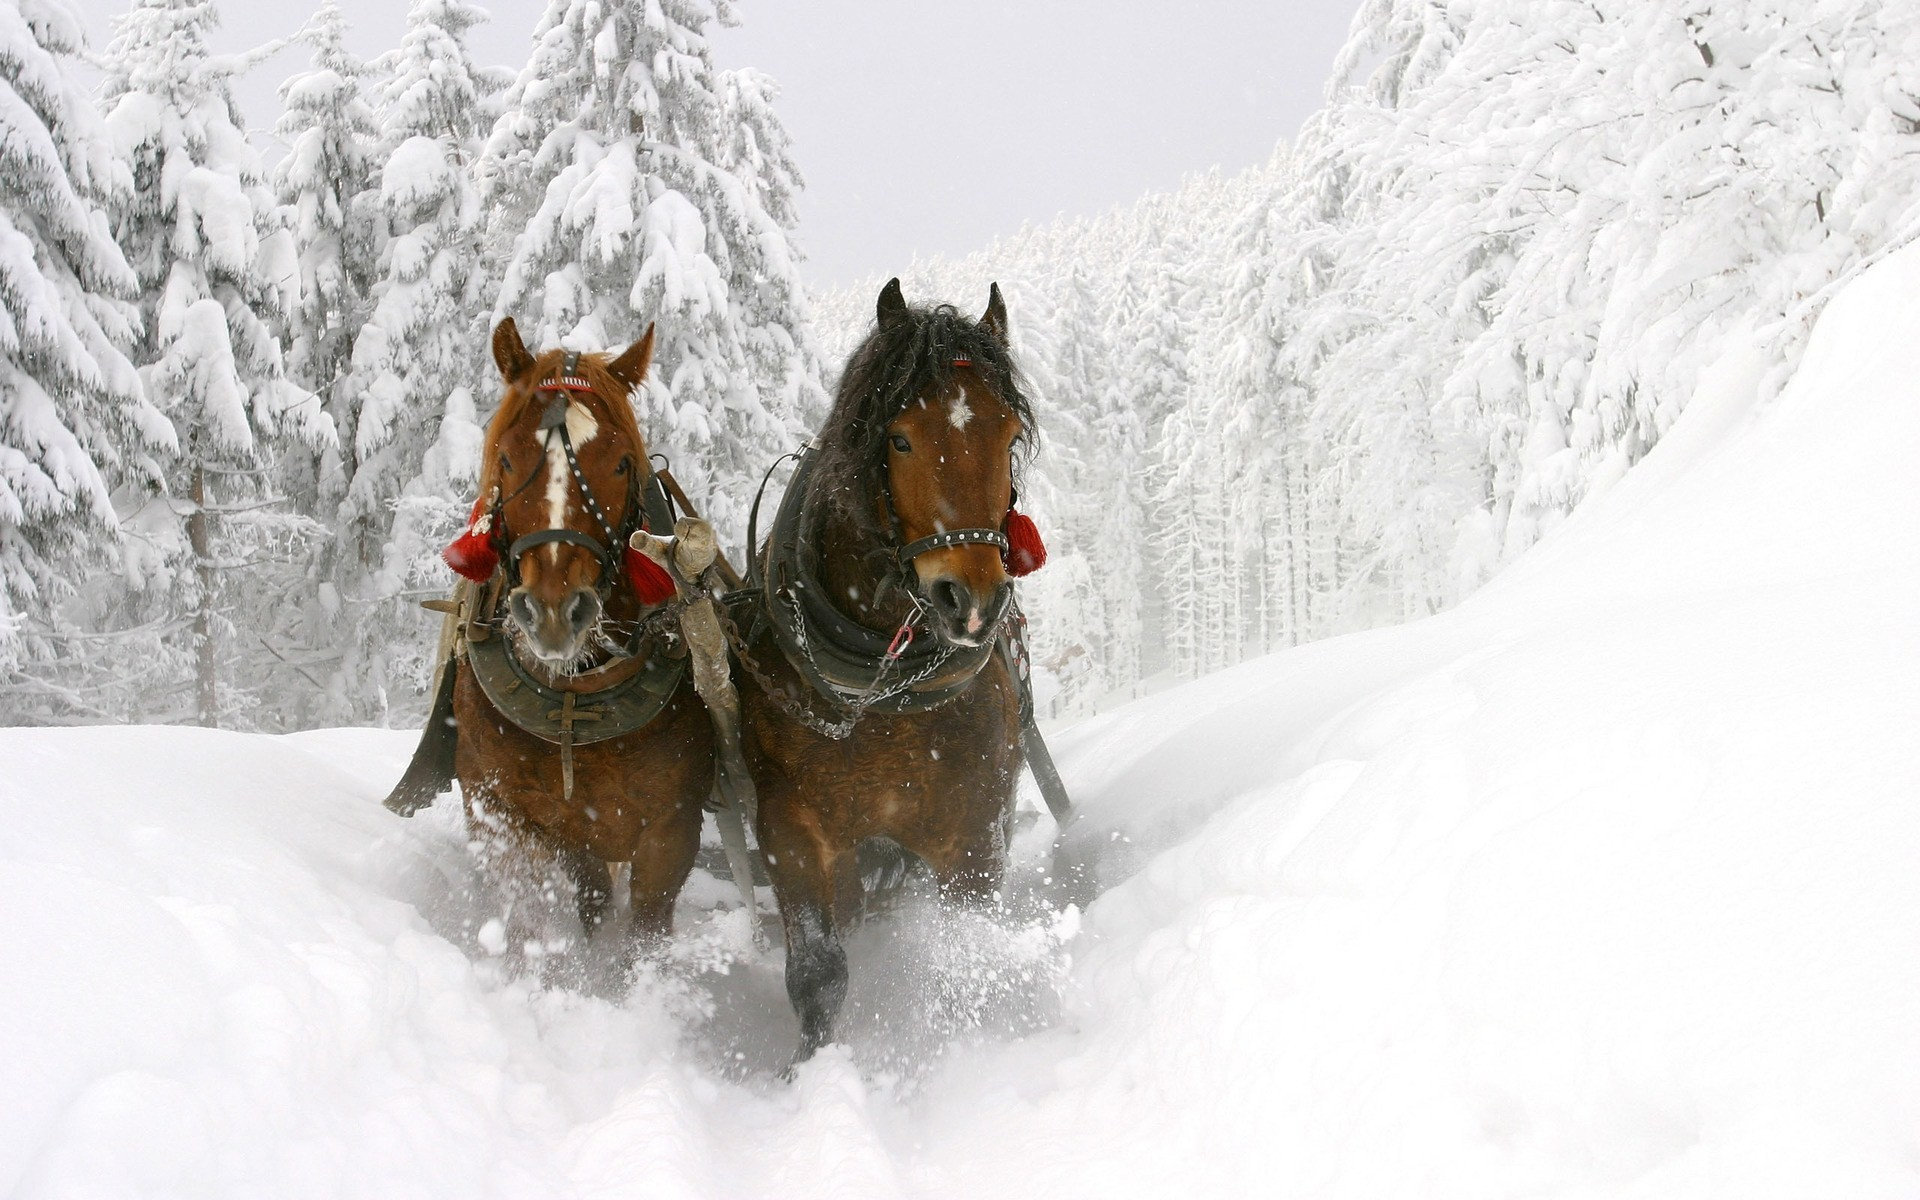 Horses Pulling Carriage in the Snow wallpaper